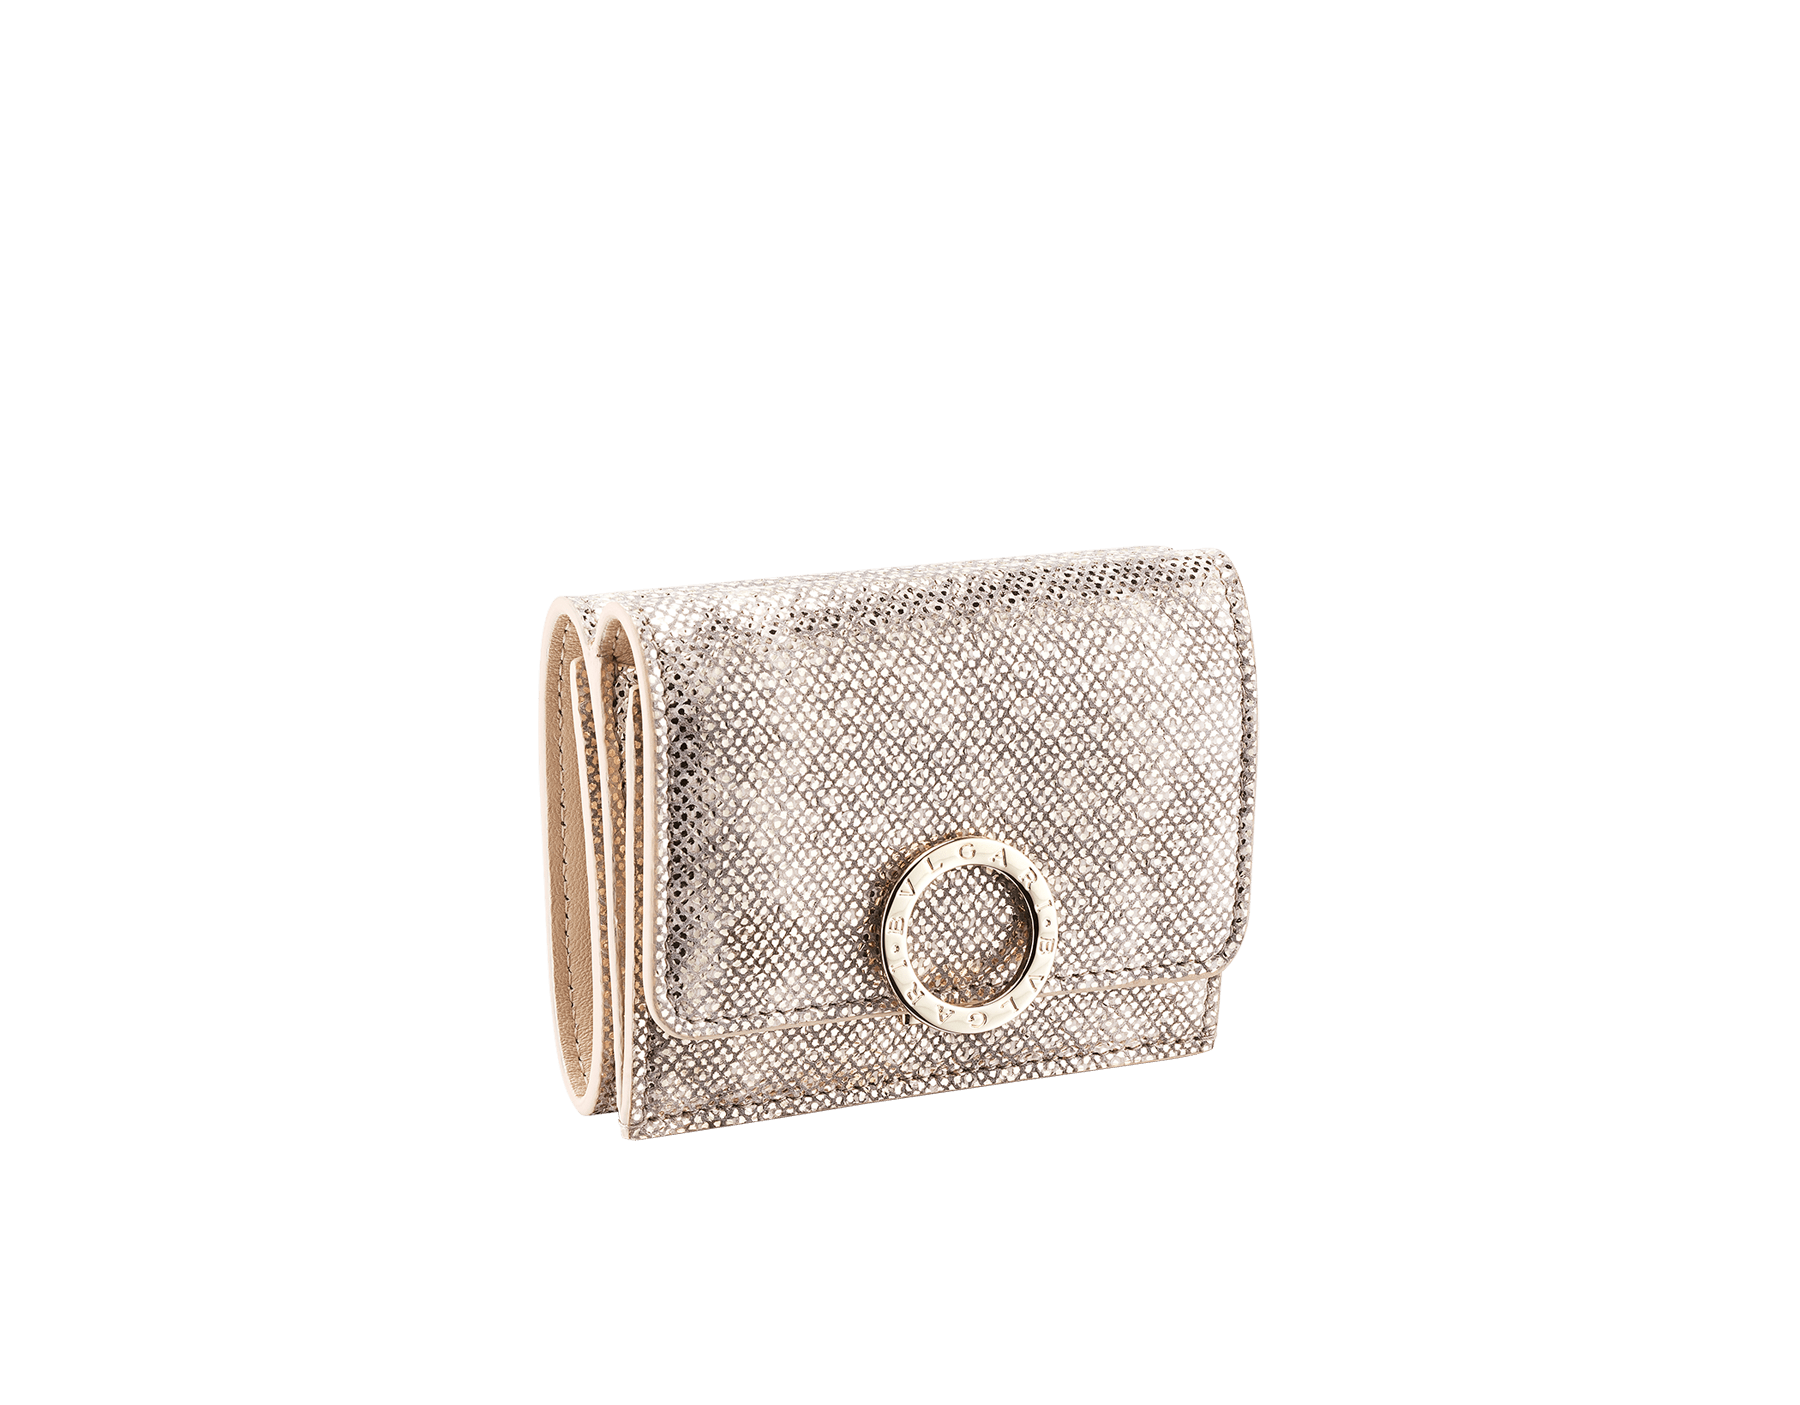 BVLGARI BVLGARI compact wallet in milky opal metallic karung skin and milky opal nappa leather. Iconic logo closure clip in light gold plated brass on the flap and press button closure on the body. 579-MINICOMPACT-K image 1